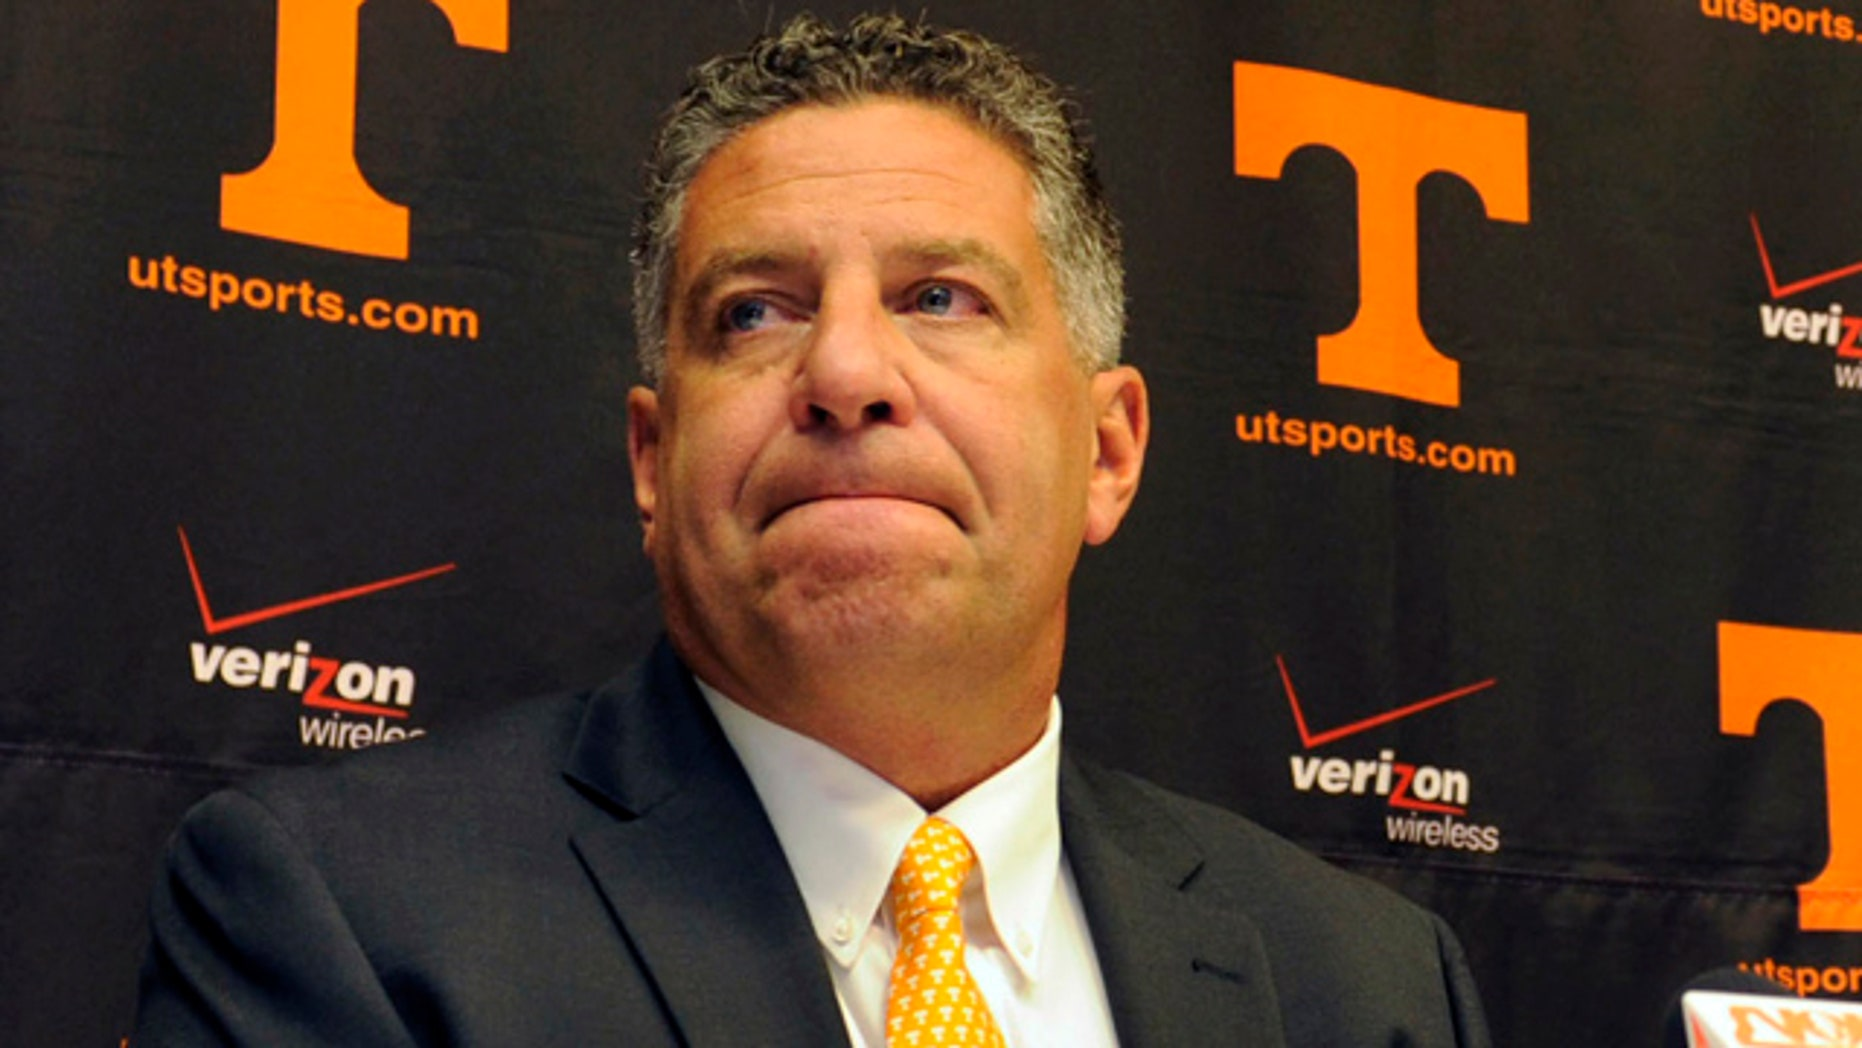 This Sept. 10, 2010, file photo shows University of Tennessee men's basketball coach Bruce Pearl grimacing during a news conference, where  Pearl expressed remorse for giving misleading information to the NCAA during an investigation into the school's basketball program, in Knoxville, Tenn.